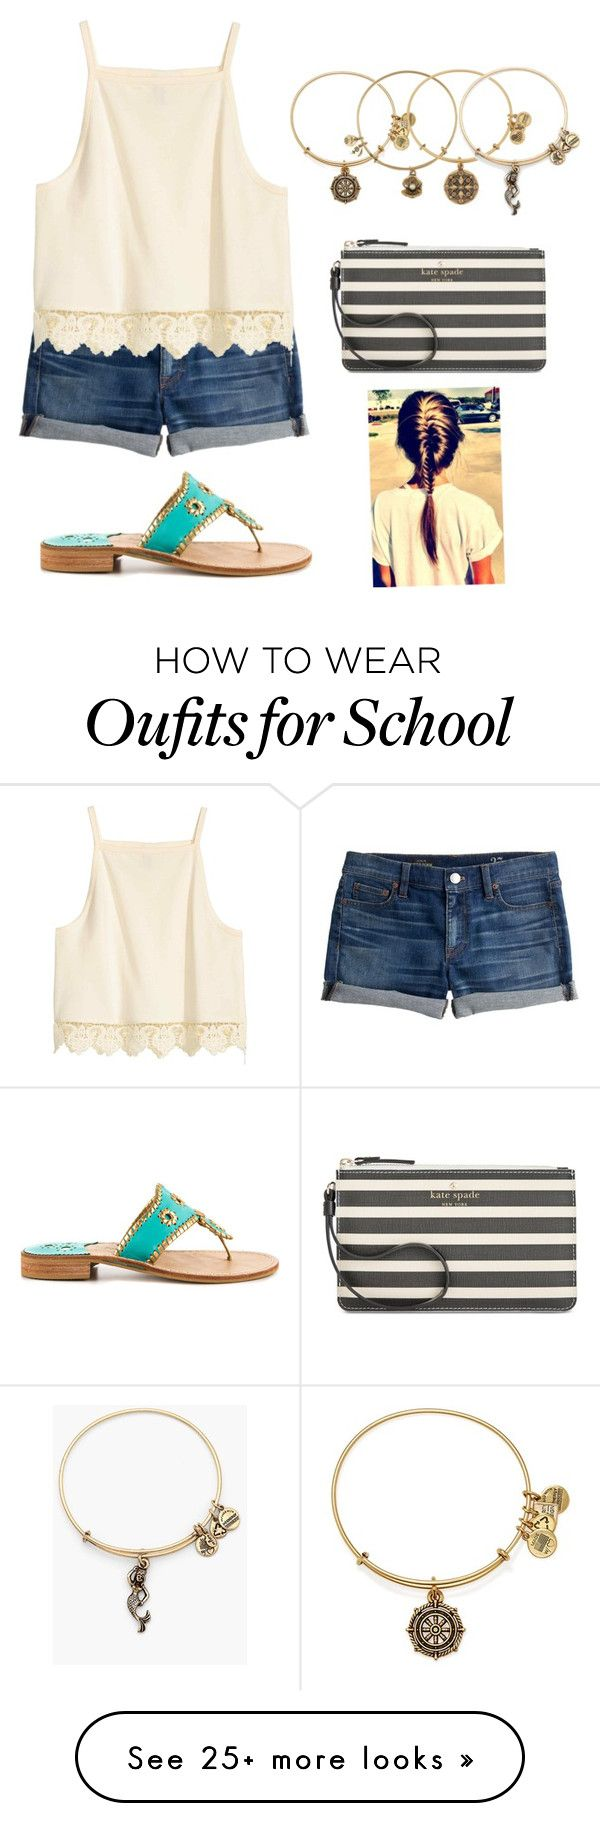 """""""Going to school! Have a god day everyone"""" by pandapeeper on Polyvore featuring J.Crew, Alex and Ani, Jack Rogers and Kate Spade"""